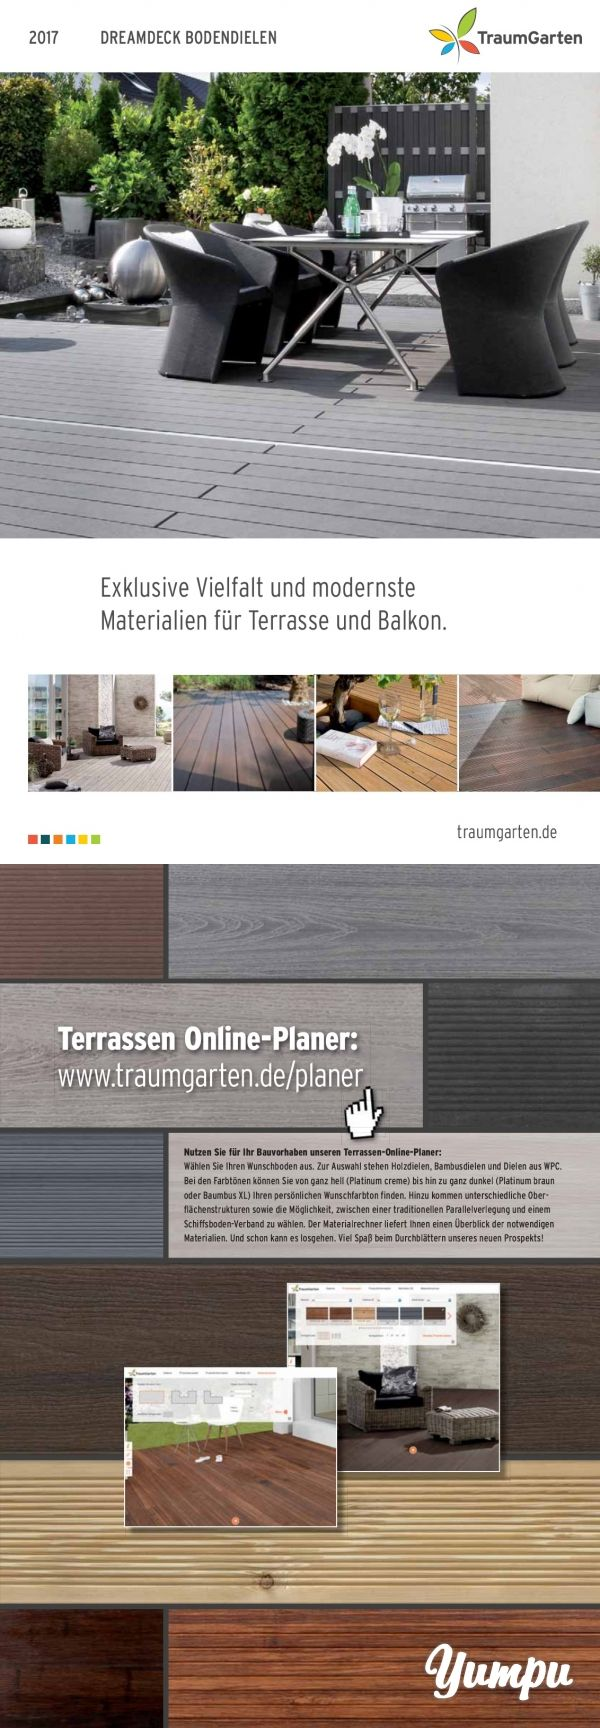 25+ Best Ideas About Holz Terrassendielen On Pinterest | Deck ... Auswahl Materialien Terrassenuberdachung